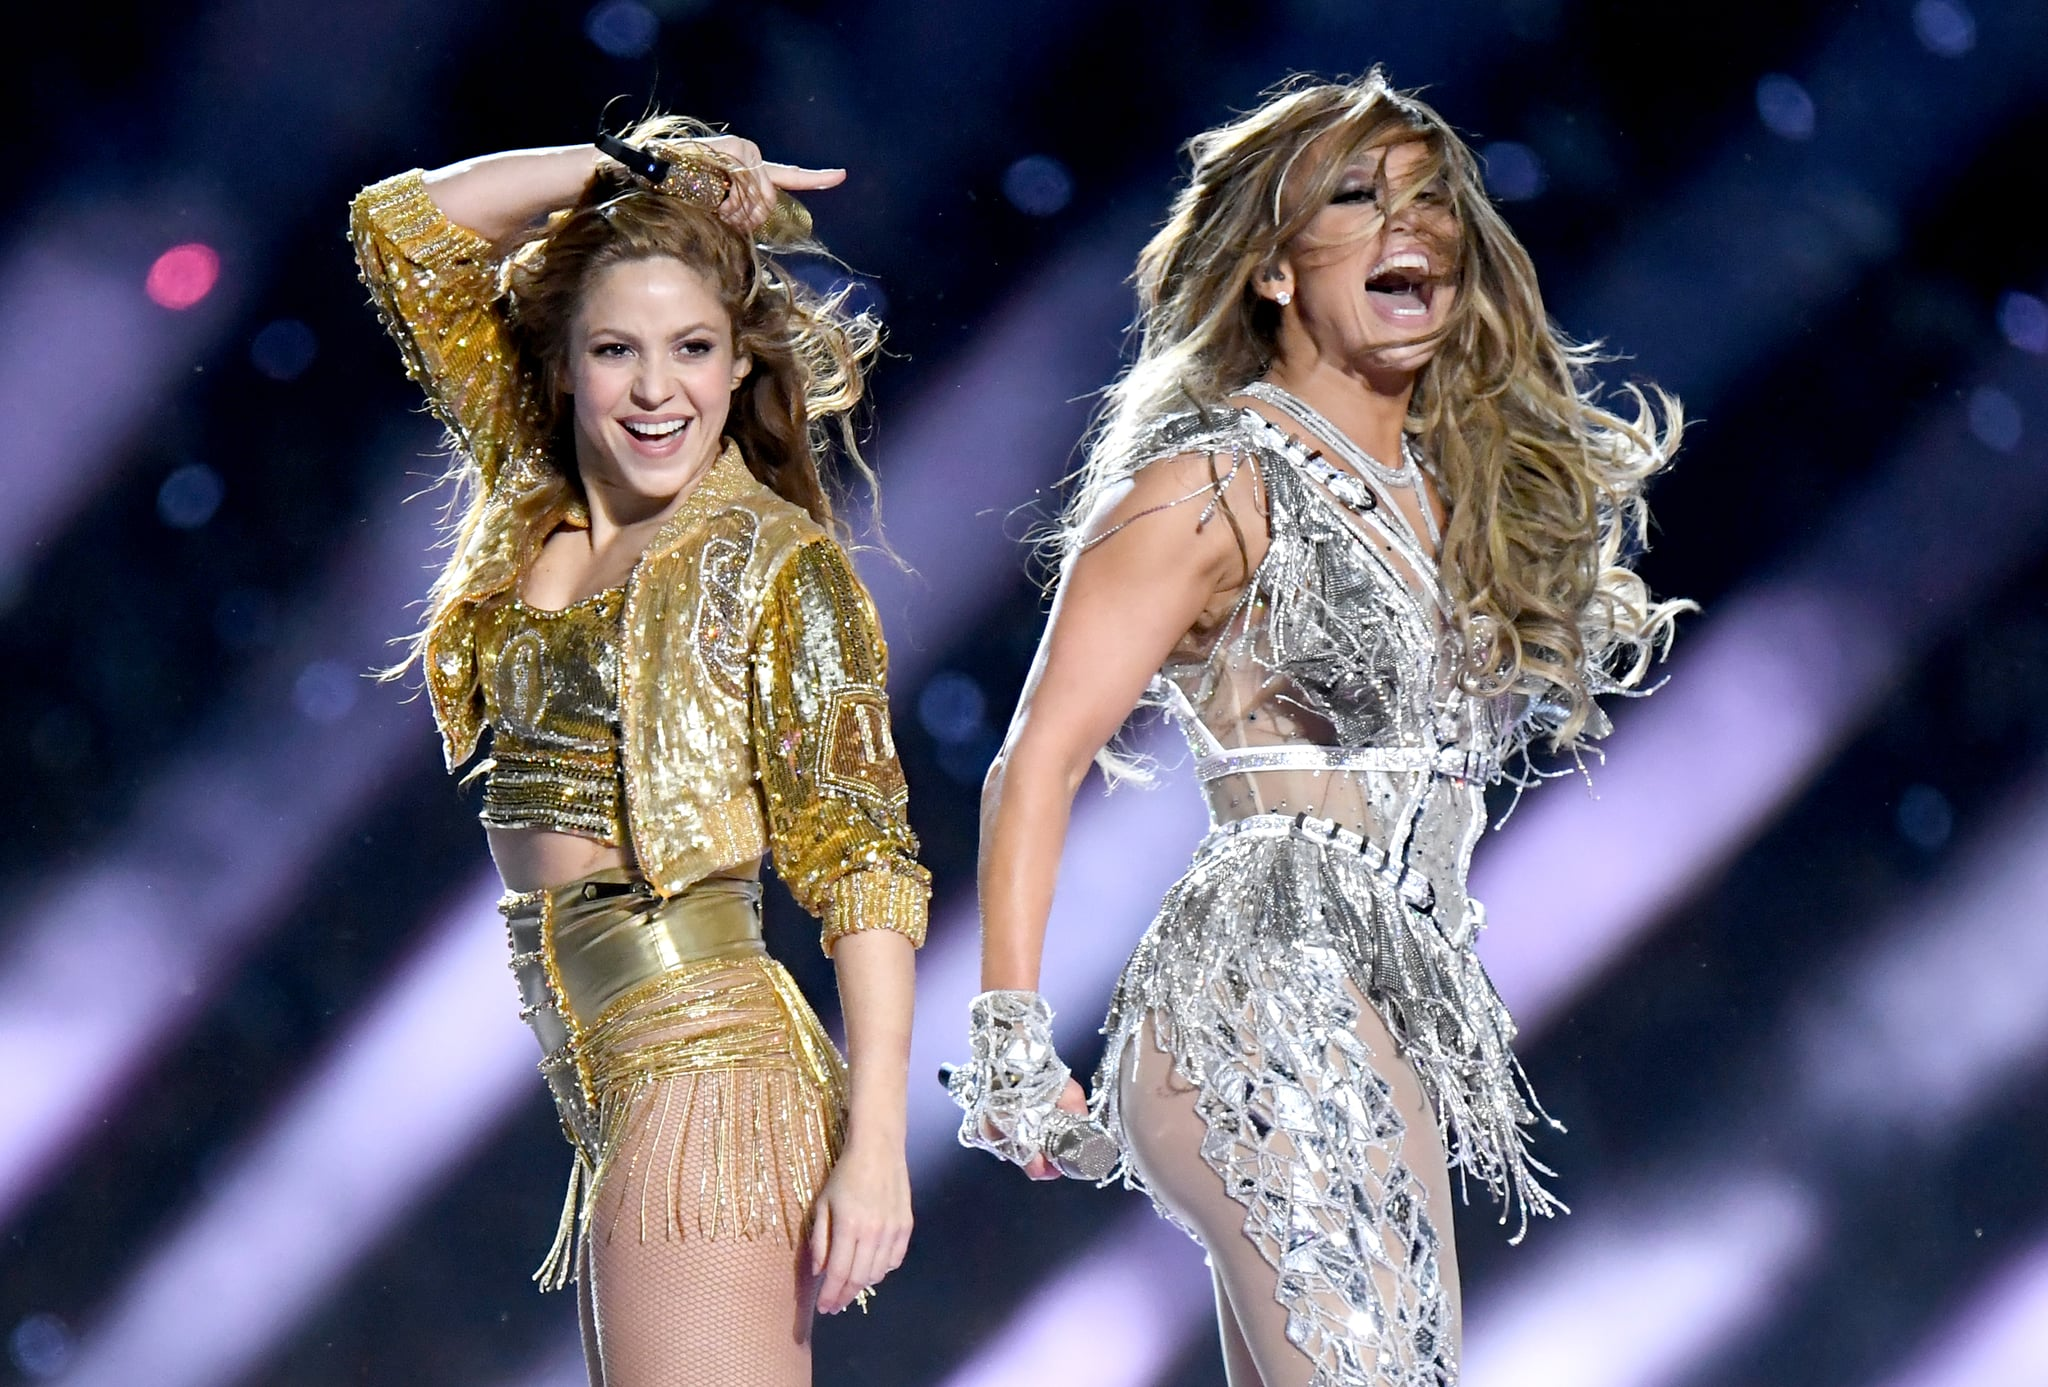 MIAMI, FLORIDA - FEBRUARY 02: Shakira and Jennifer Lopez performs onstage during the Pepsi Super Bowl LIV Halftime Show at Hard Rock Stadium on February 02, 2020 in Miami, Florida. (Photo by Jeff Kravitz/FilmMagic)